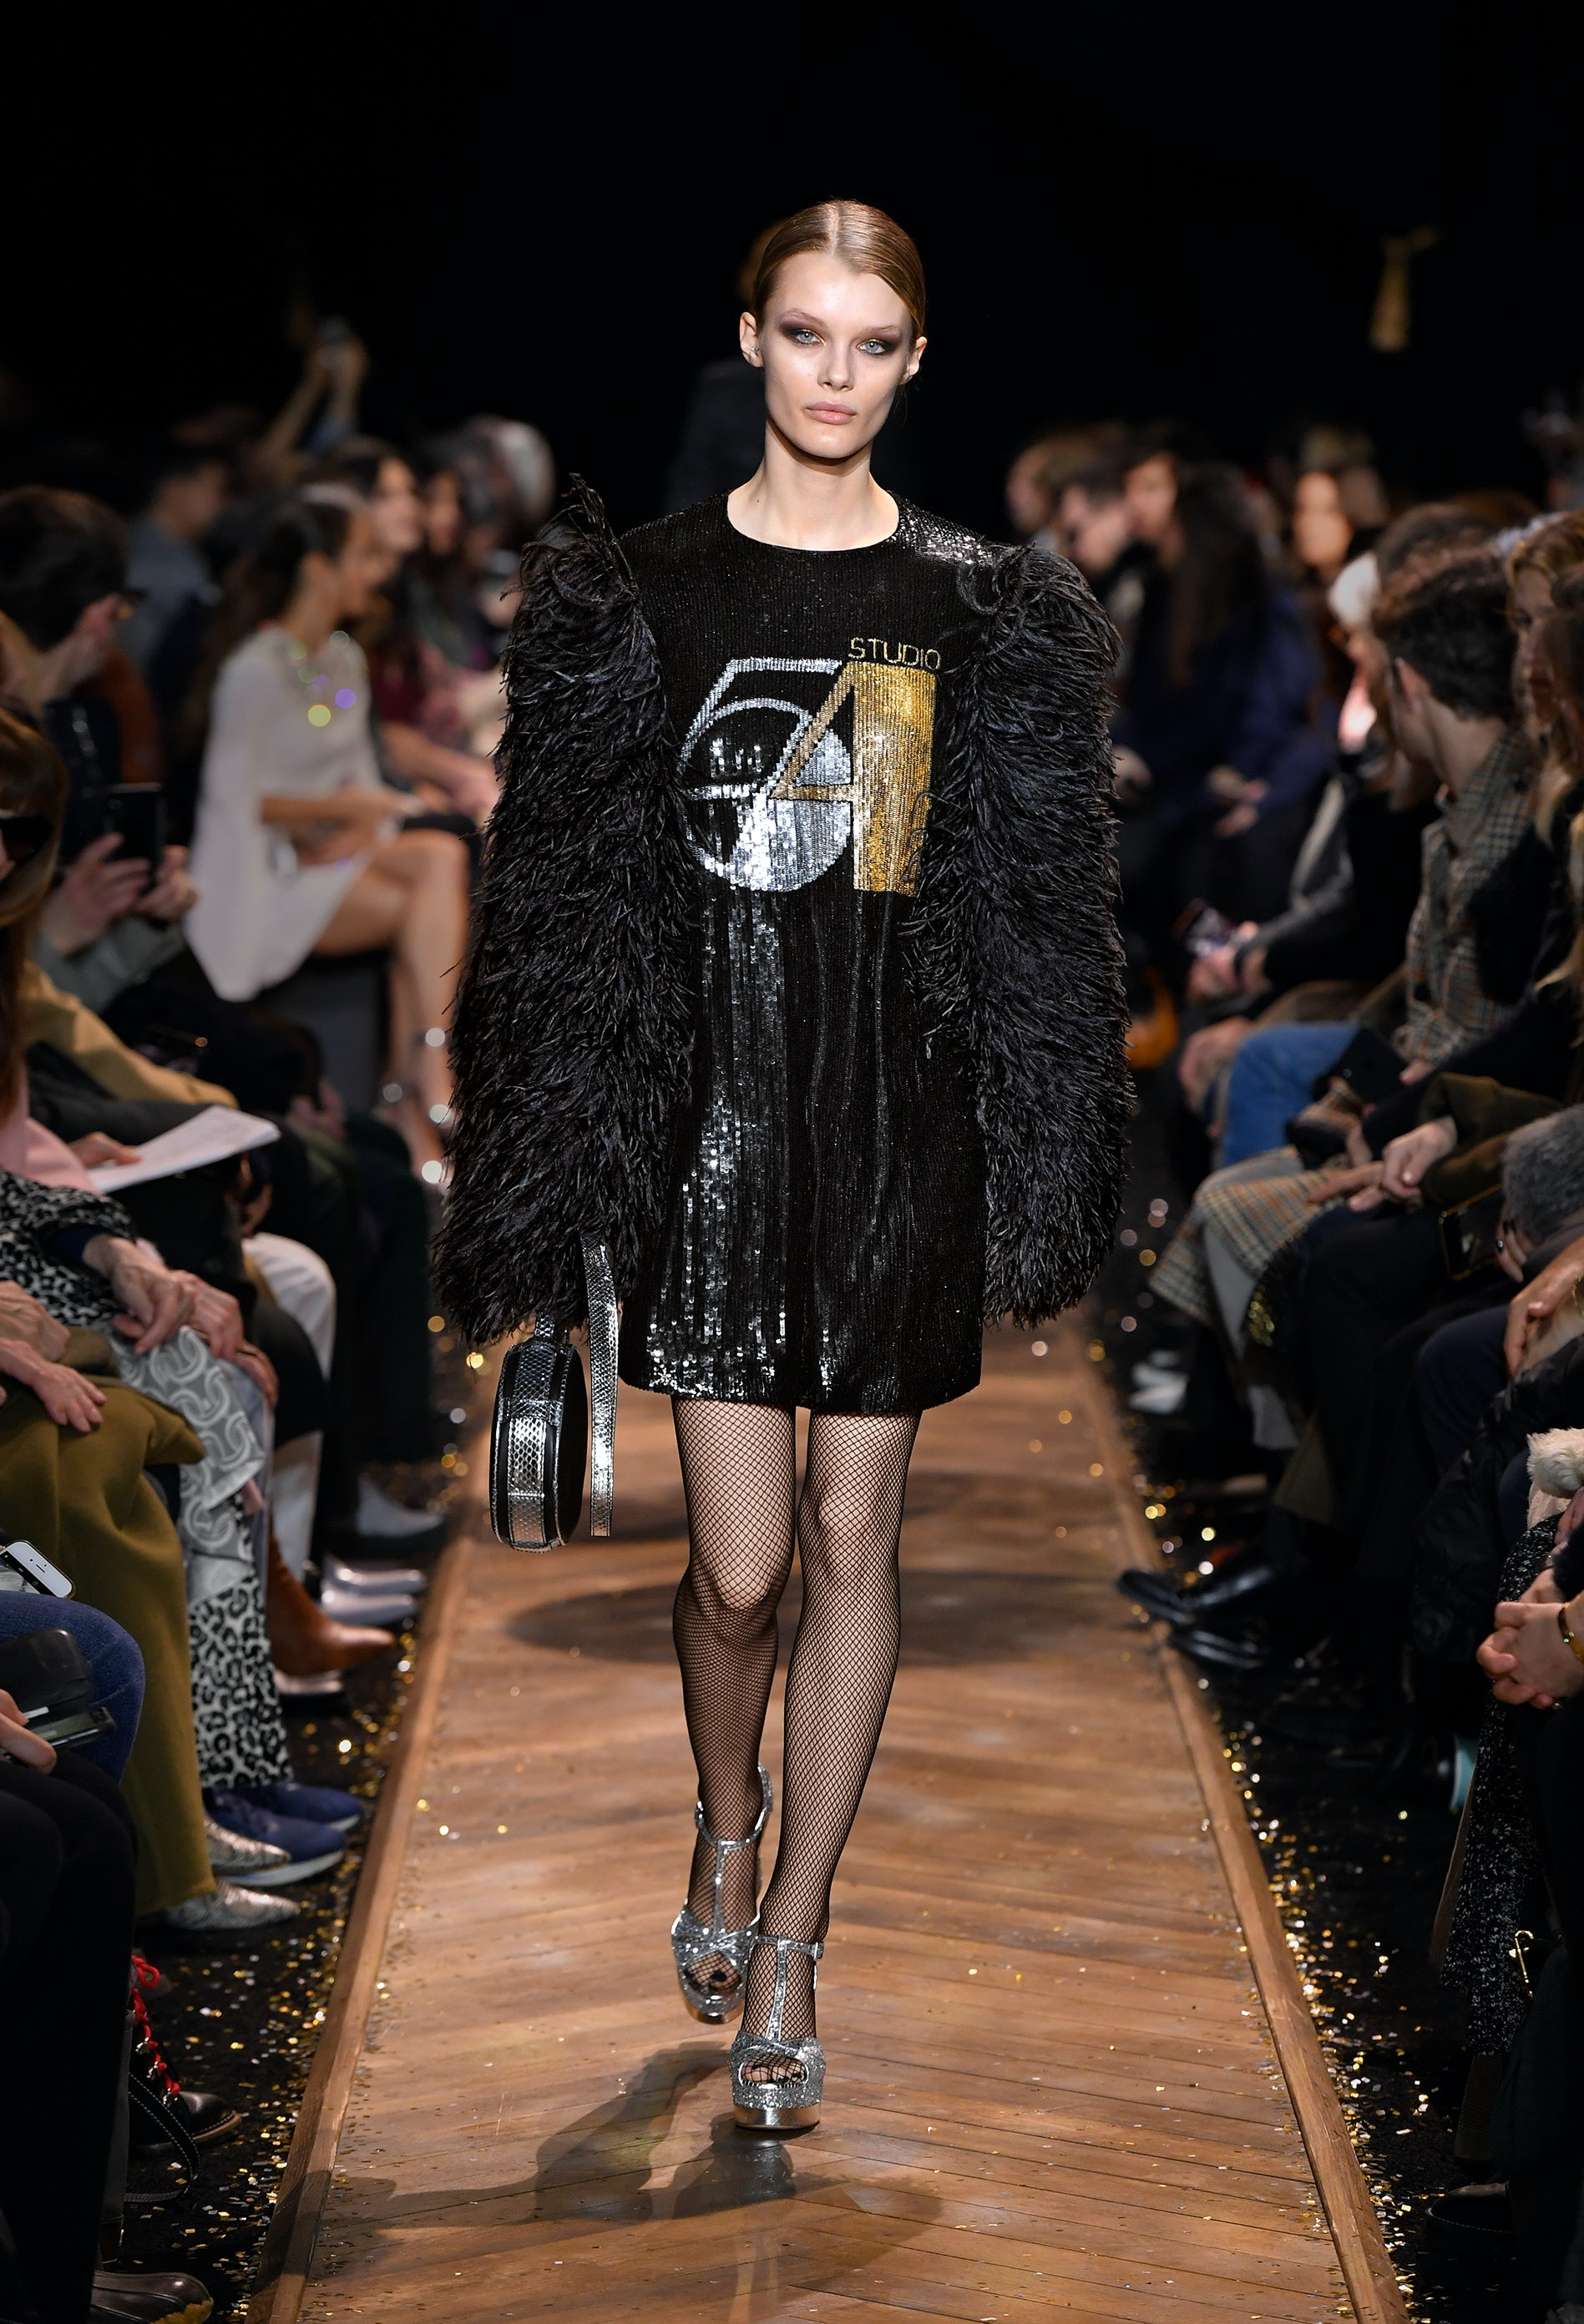 Look 65 from Michael Kors' Studio 54-themed Autumn/Winter 2019 collection worn by Kris Grikaite. Michael Kors.